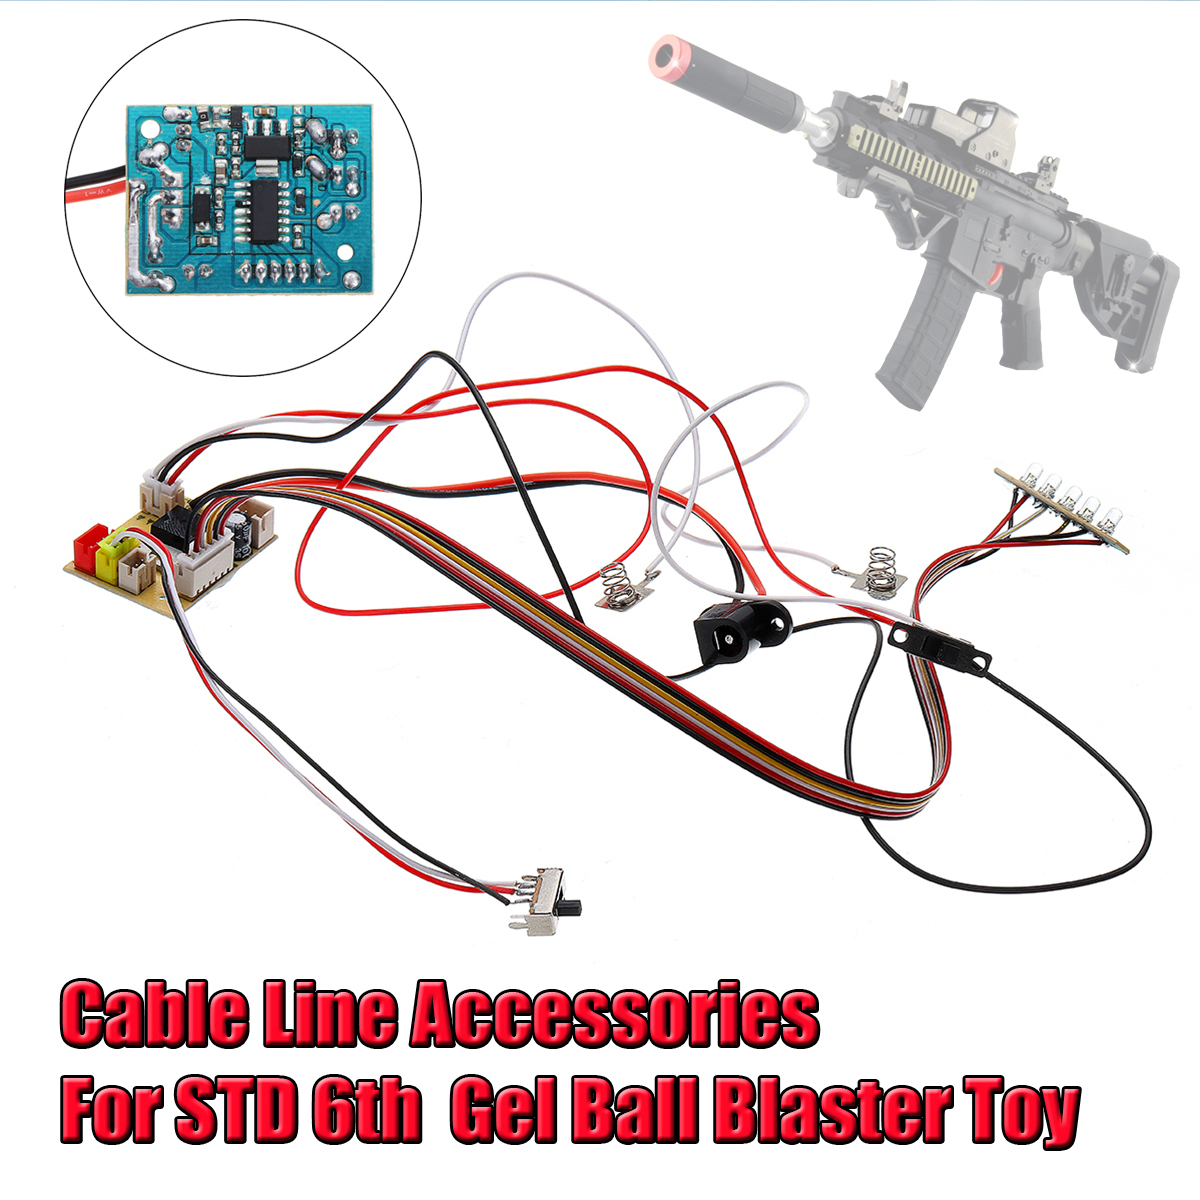 US $9 99 |Cable Line Motherboard For STD 6th Generation Gel Ball Water Toy  Outdoor Cable Line-in Toy Guns from Toys & Hobbies on Aliexpress com |